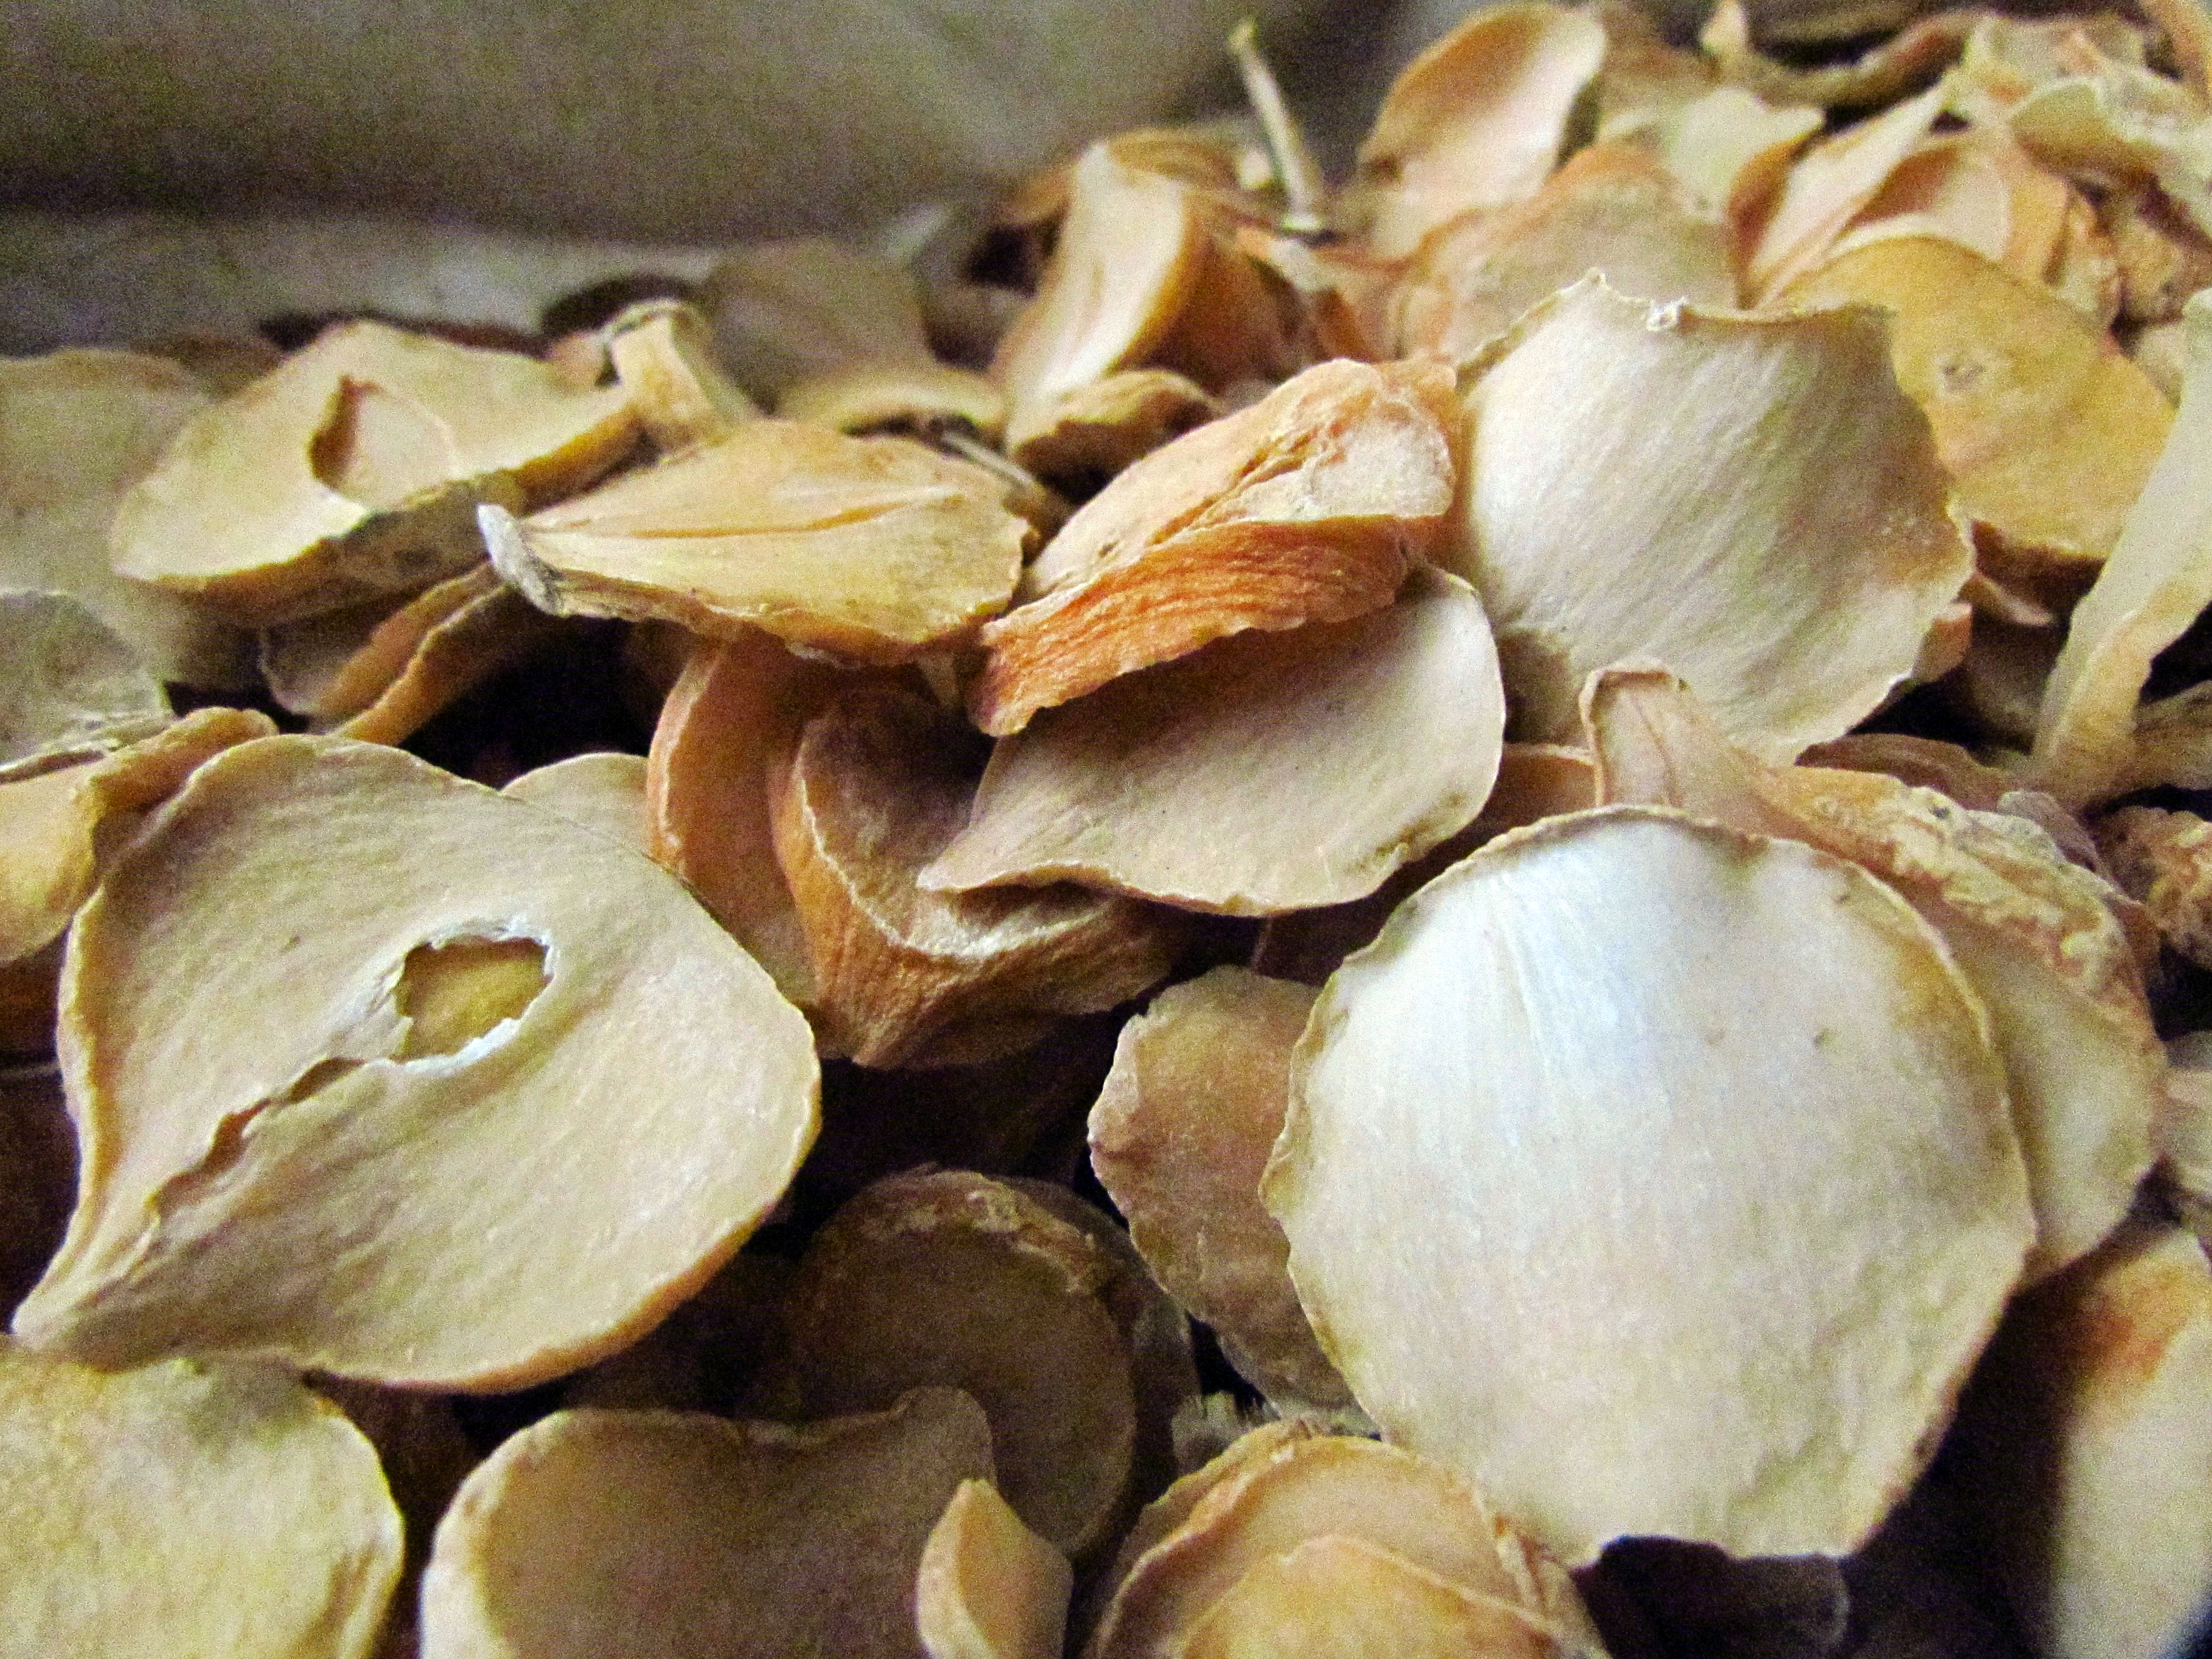 Persian shallot could help fight TB antibiotic resistance